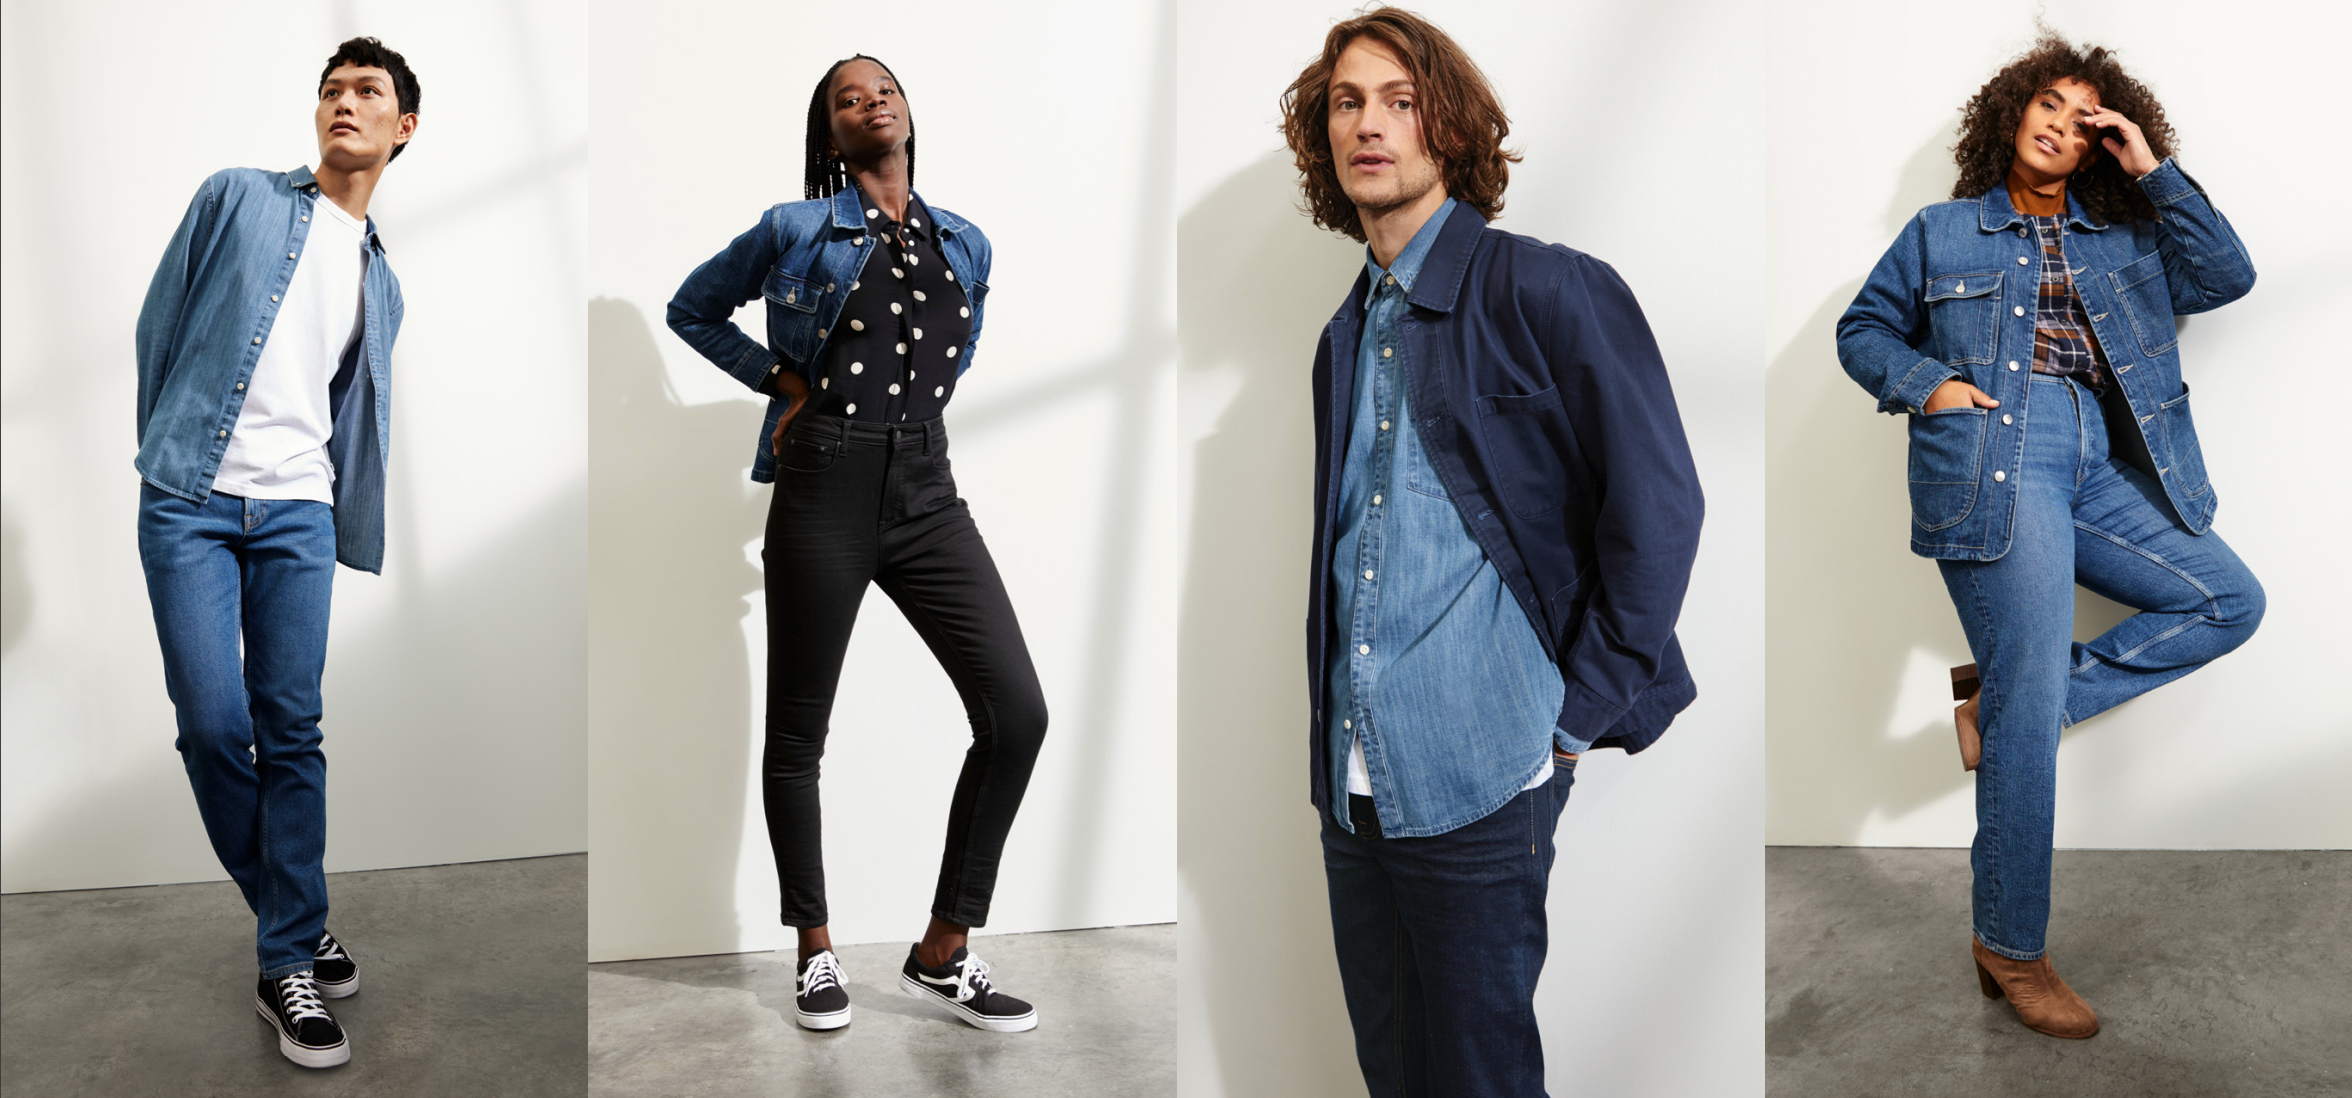 Denim looks from Walmart's Free Assembly Brand